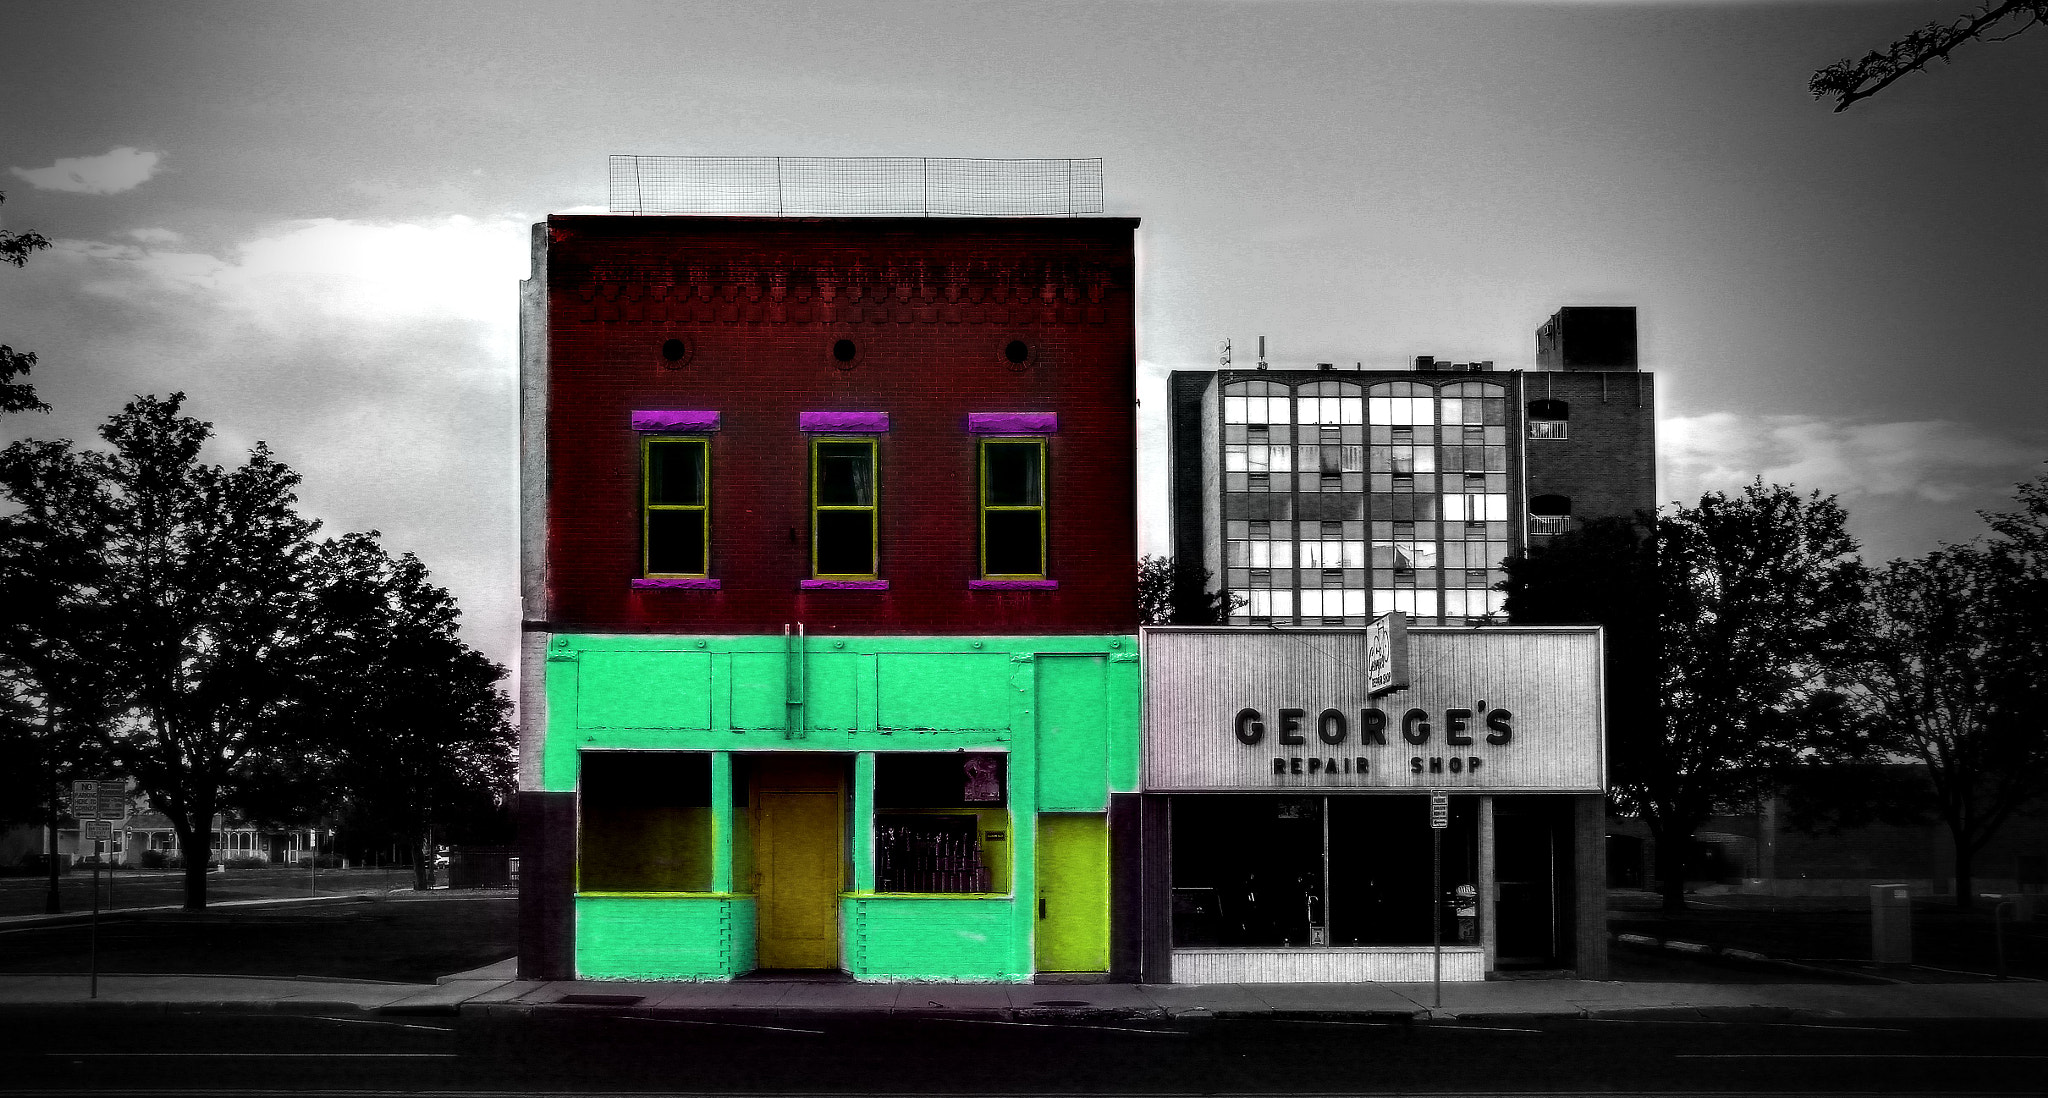 Photograph Georges Repair by Johnny Gomez on 500px